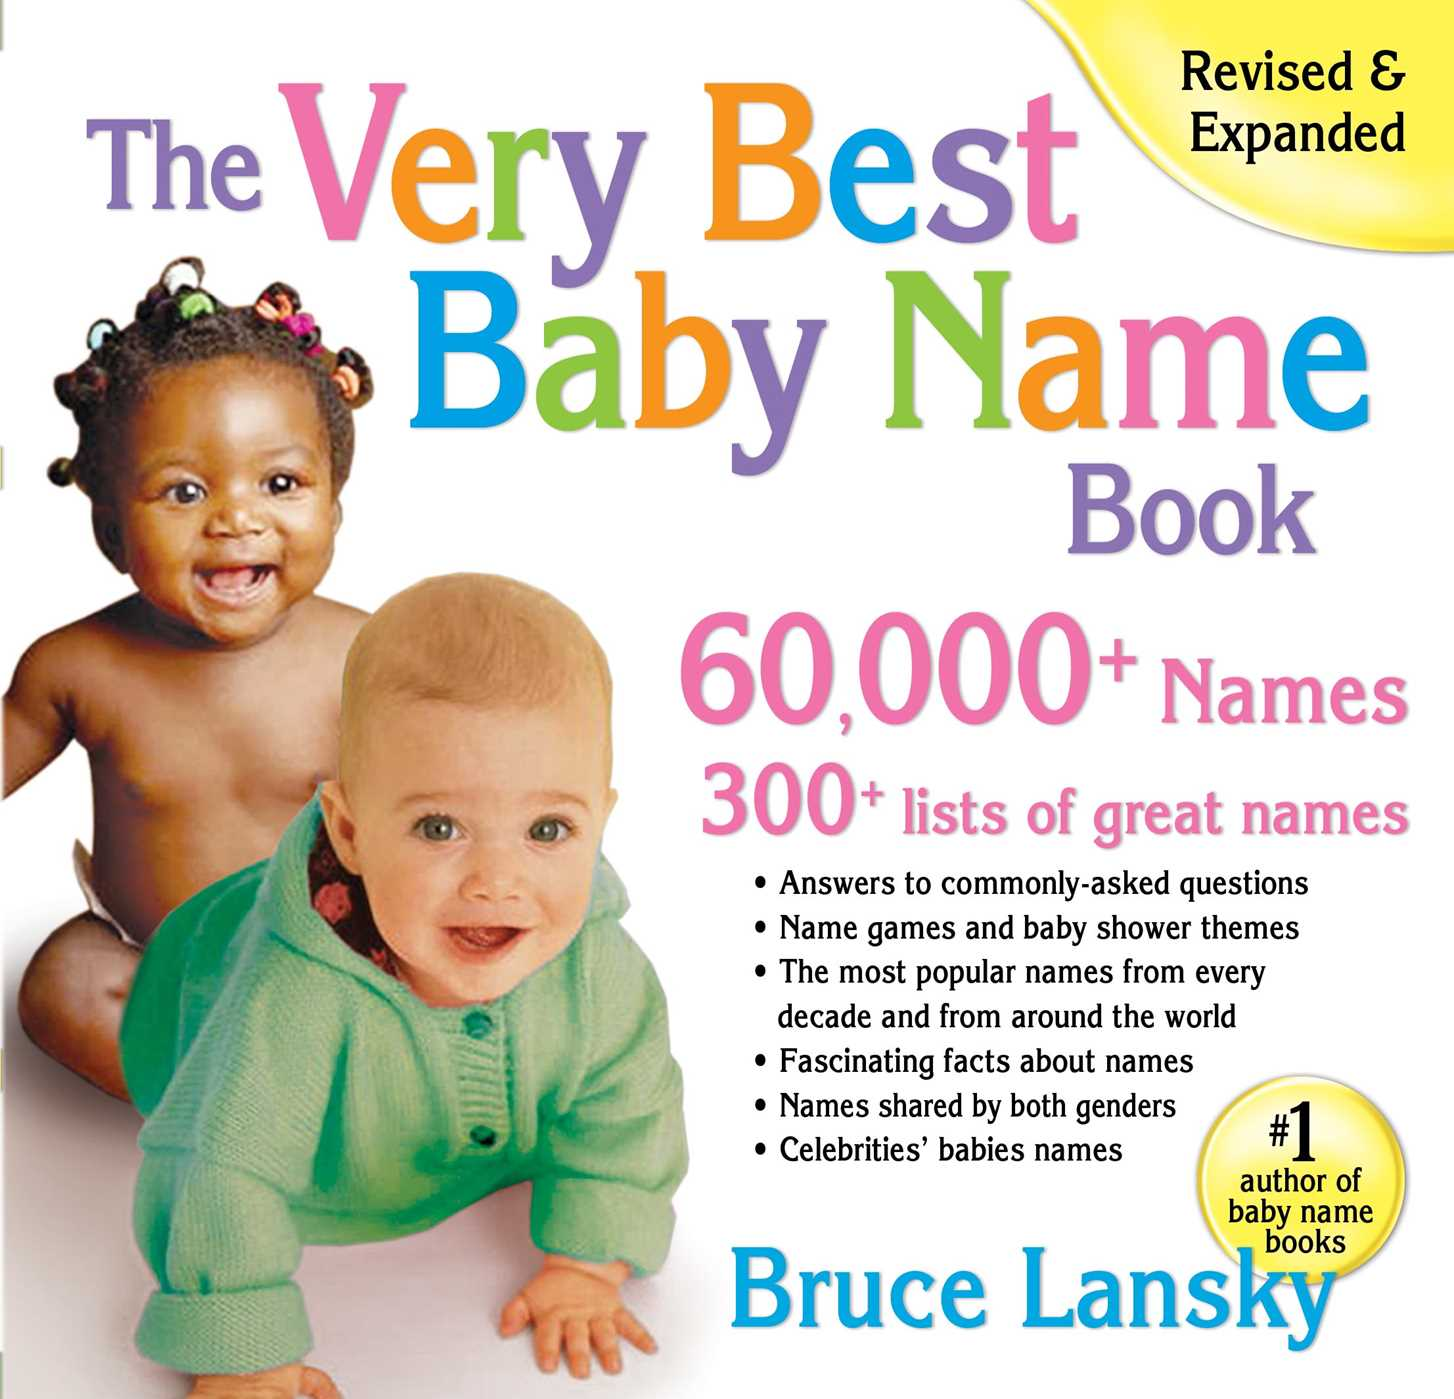 The very best baby name book 9781451619324 hr